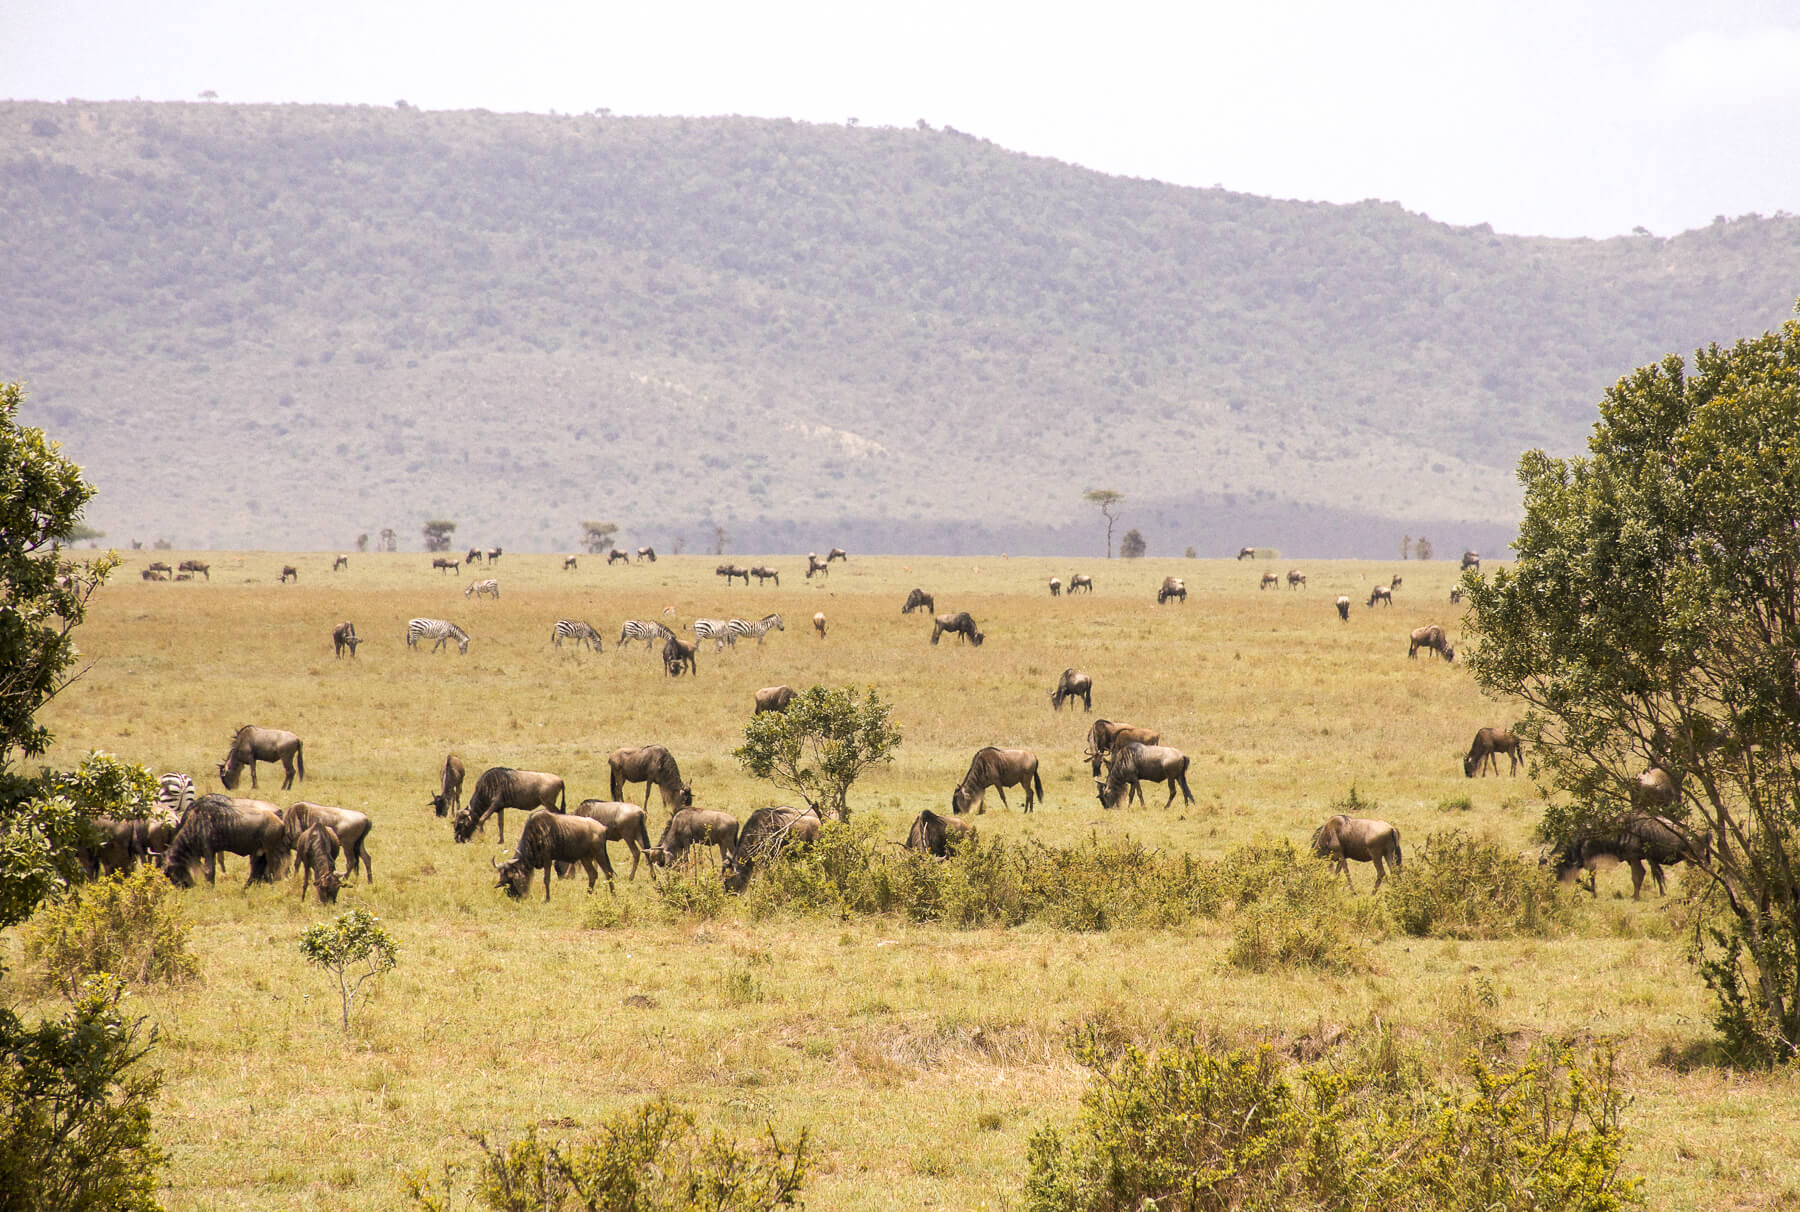 View from Losokwan Luxury Tented Camp at Zebra and Wildebeest